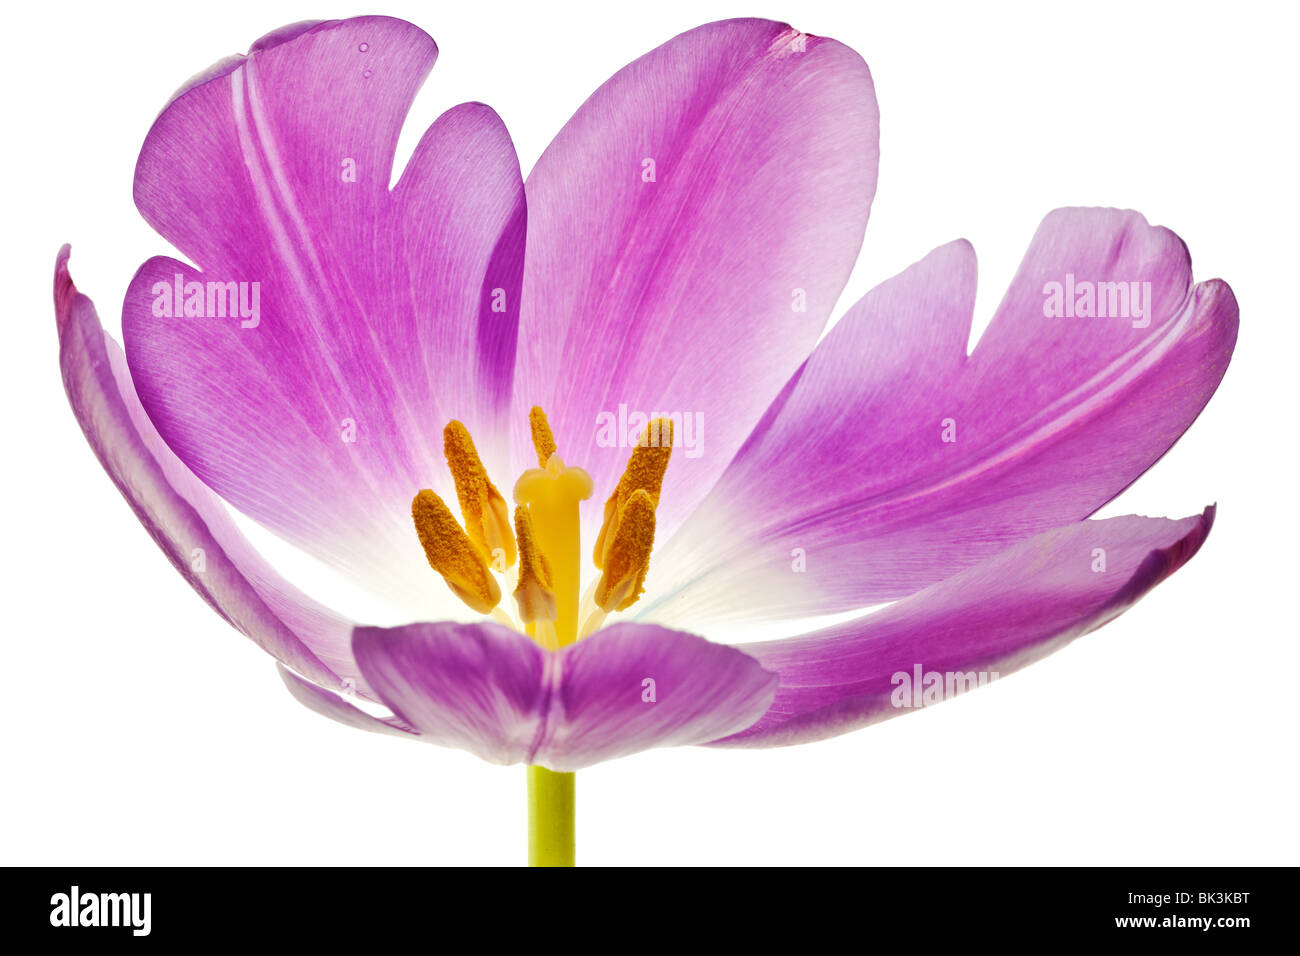 purple tulip isolated on white background - Stock Image